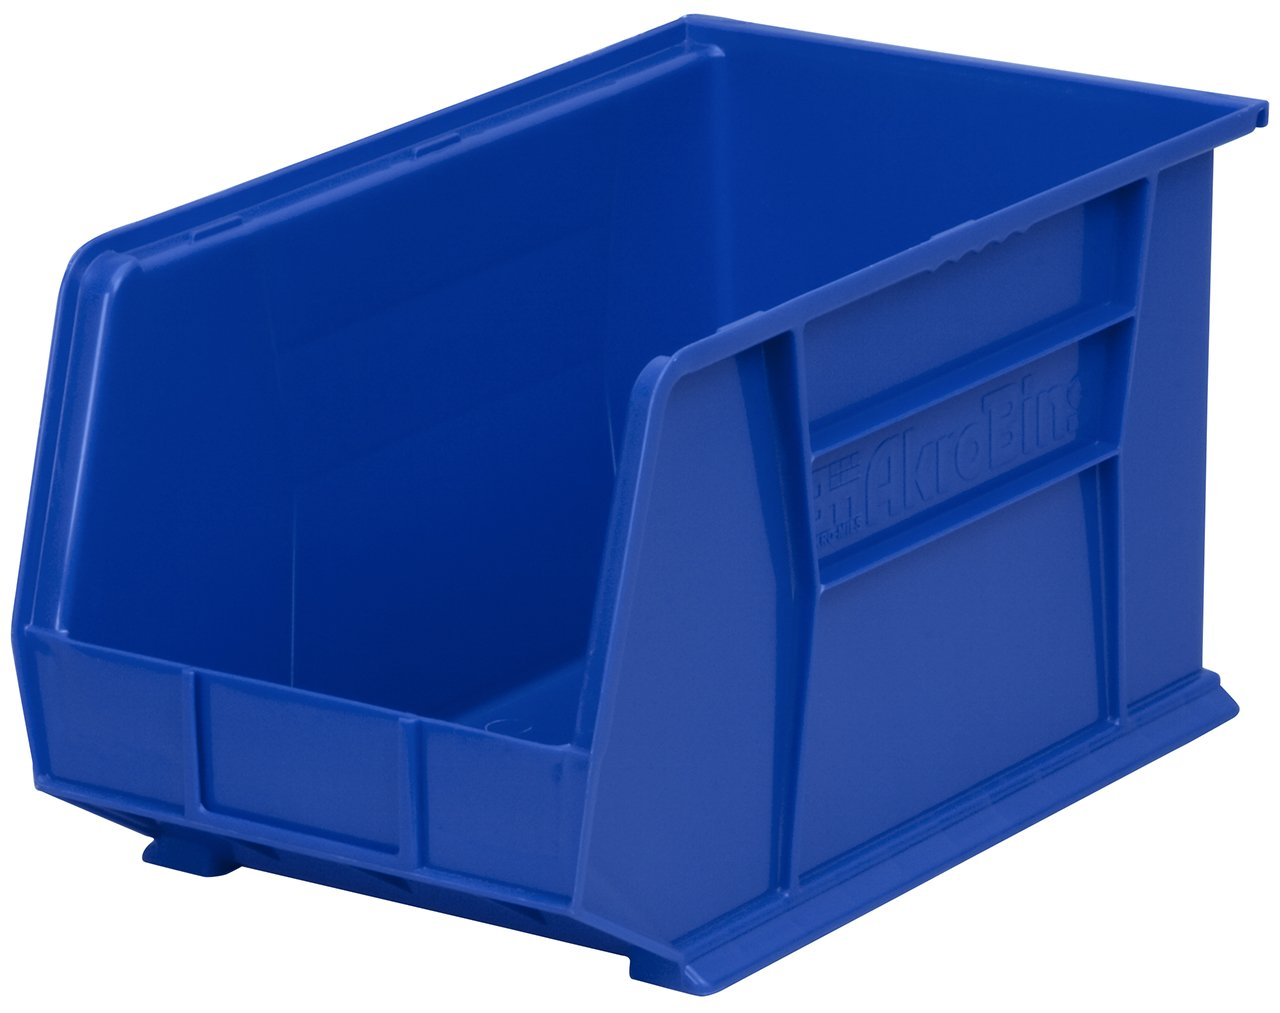 Akro-Mils 30260 Plastic Storage Stacking Hanging Akro Bin, 18-Inch by 11-Inch by 10-Inch, Blue, Case of 6